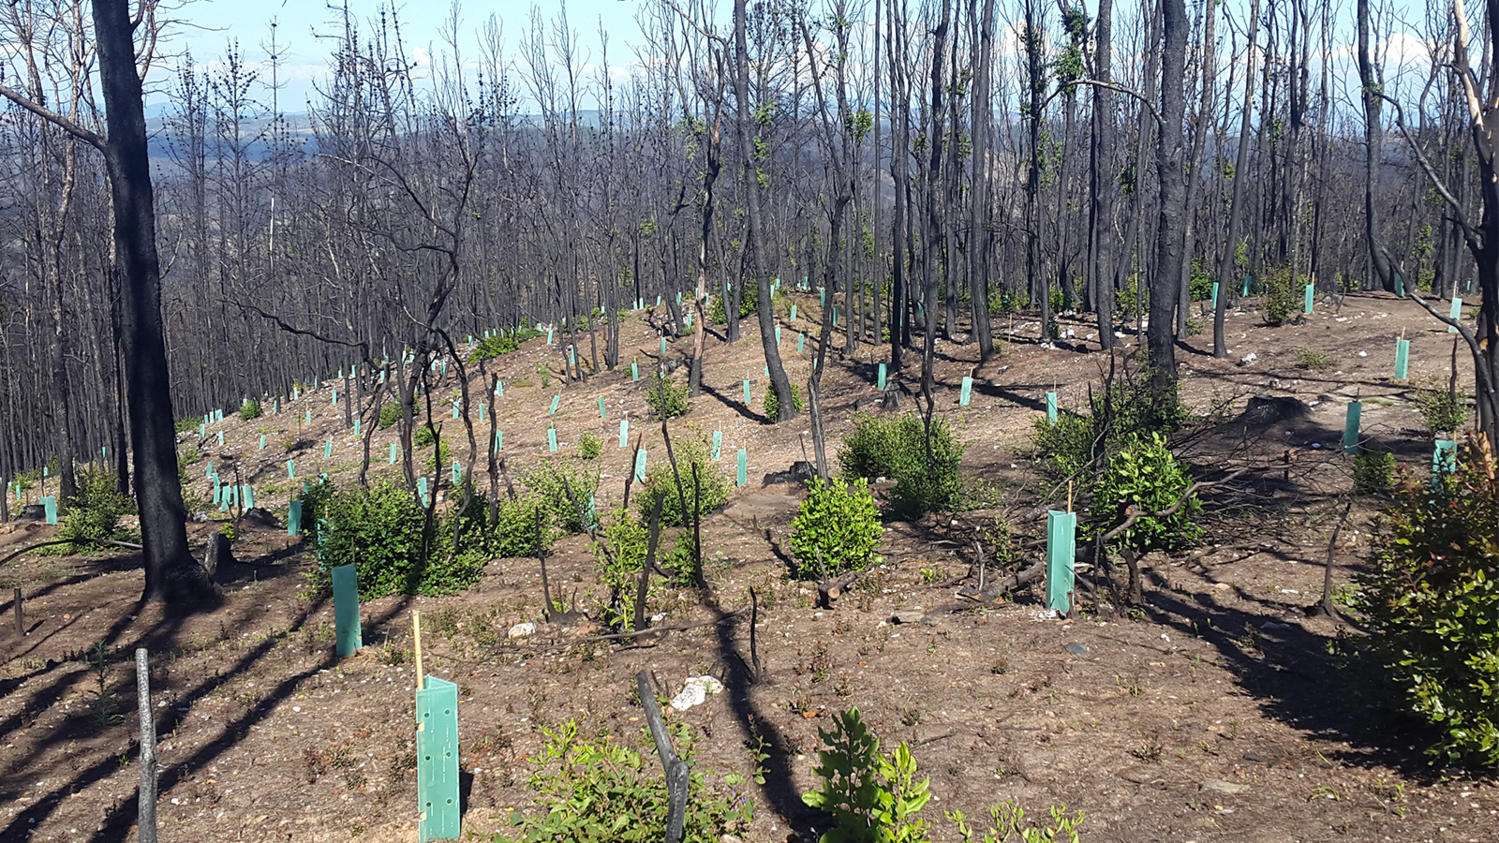 cmpc comparing two different forest restoration options for a